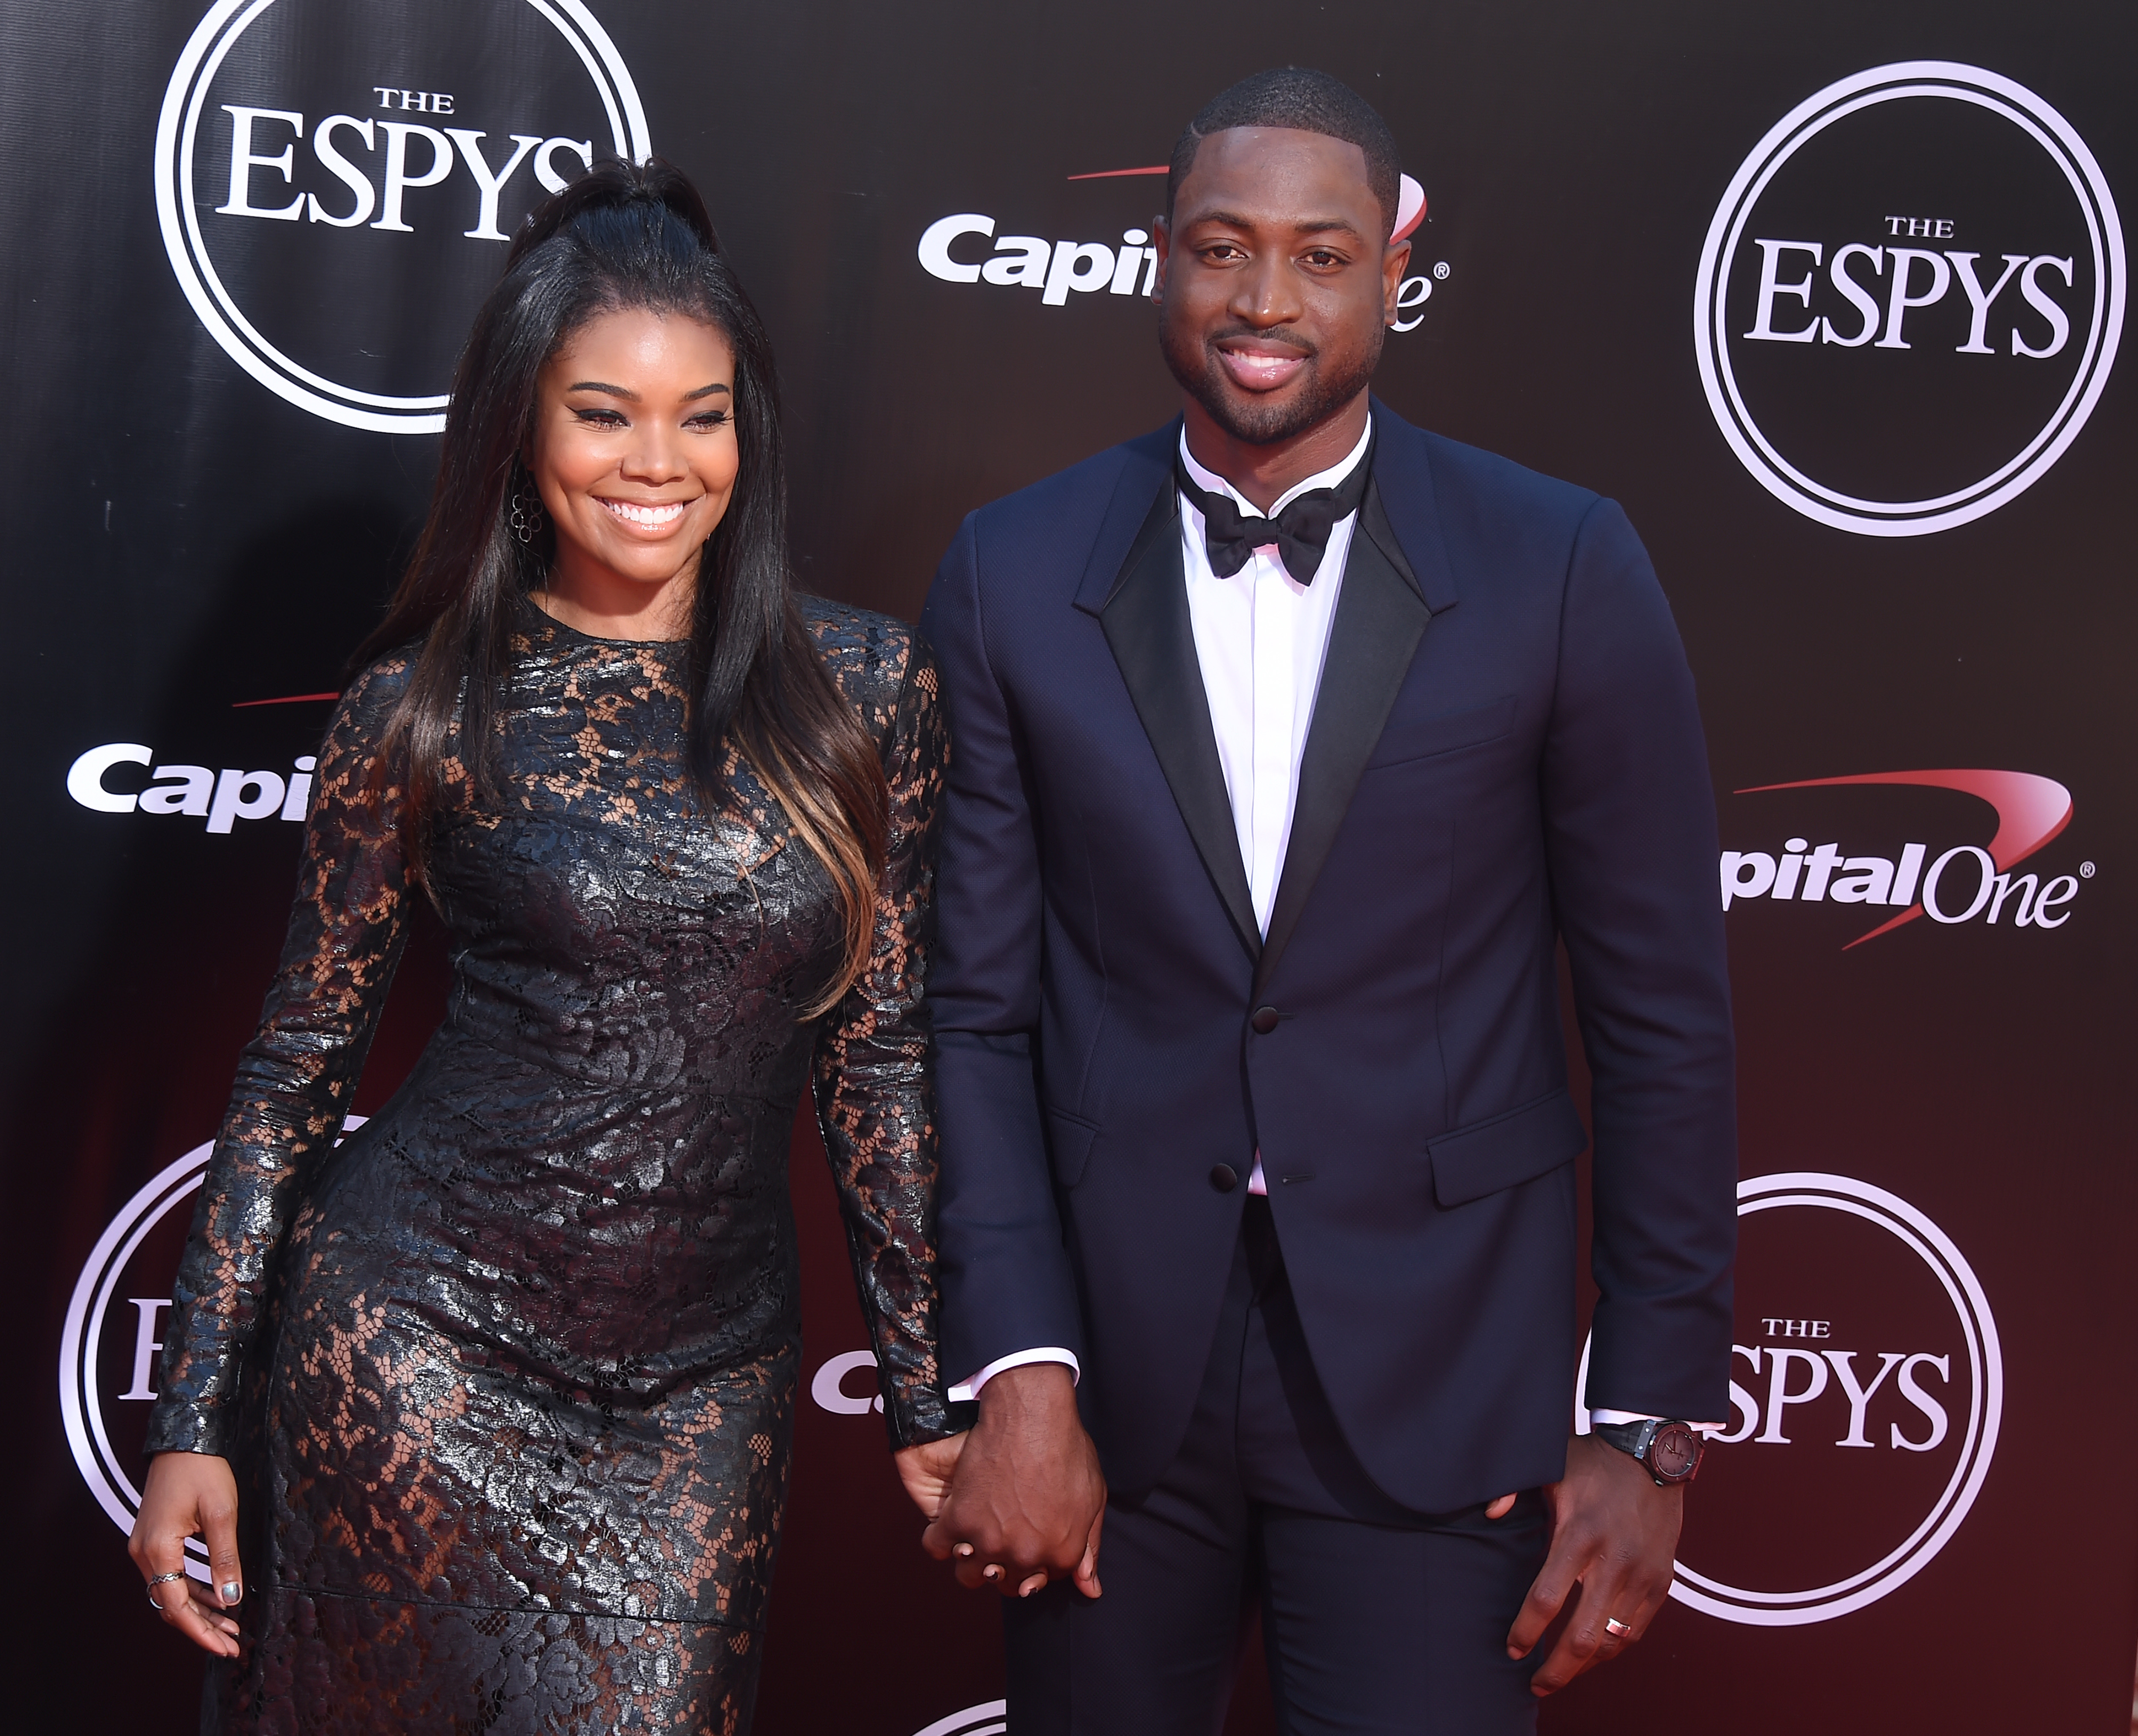 LOS ANGELES, CA - JULY 13:  Actress Gabrielle Union and NBA player Dwyane Wade arrive at The 2016 ESPYS at Microsoft Theater on July 13, 2016 in Los Angeles, California.  (Photo by Gregg DeGuire/WireImage)